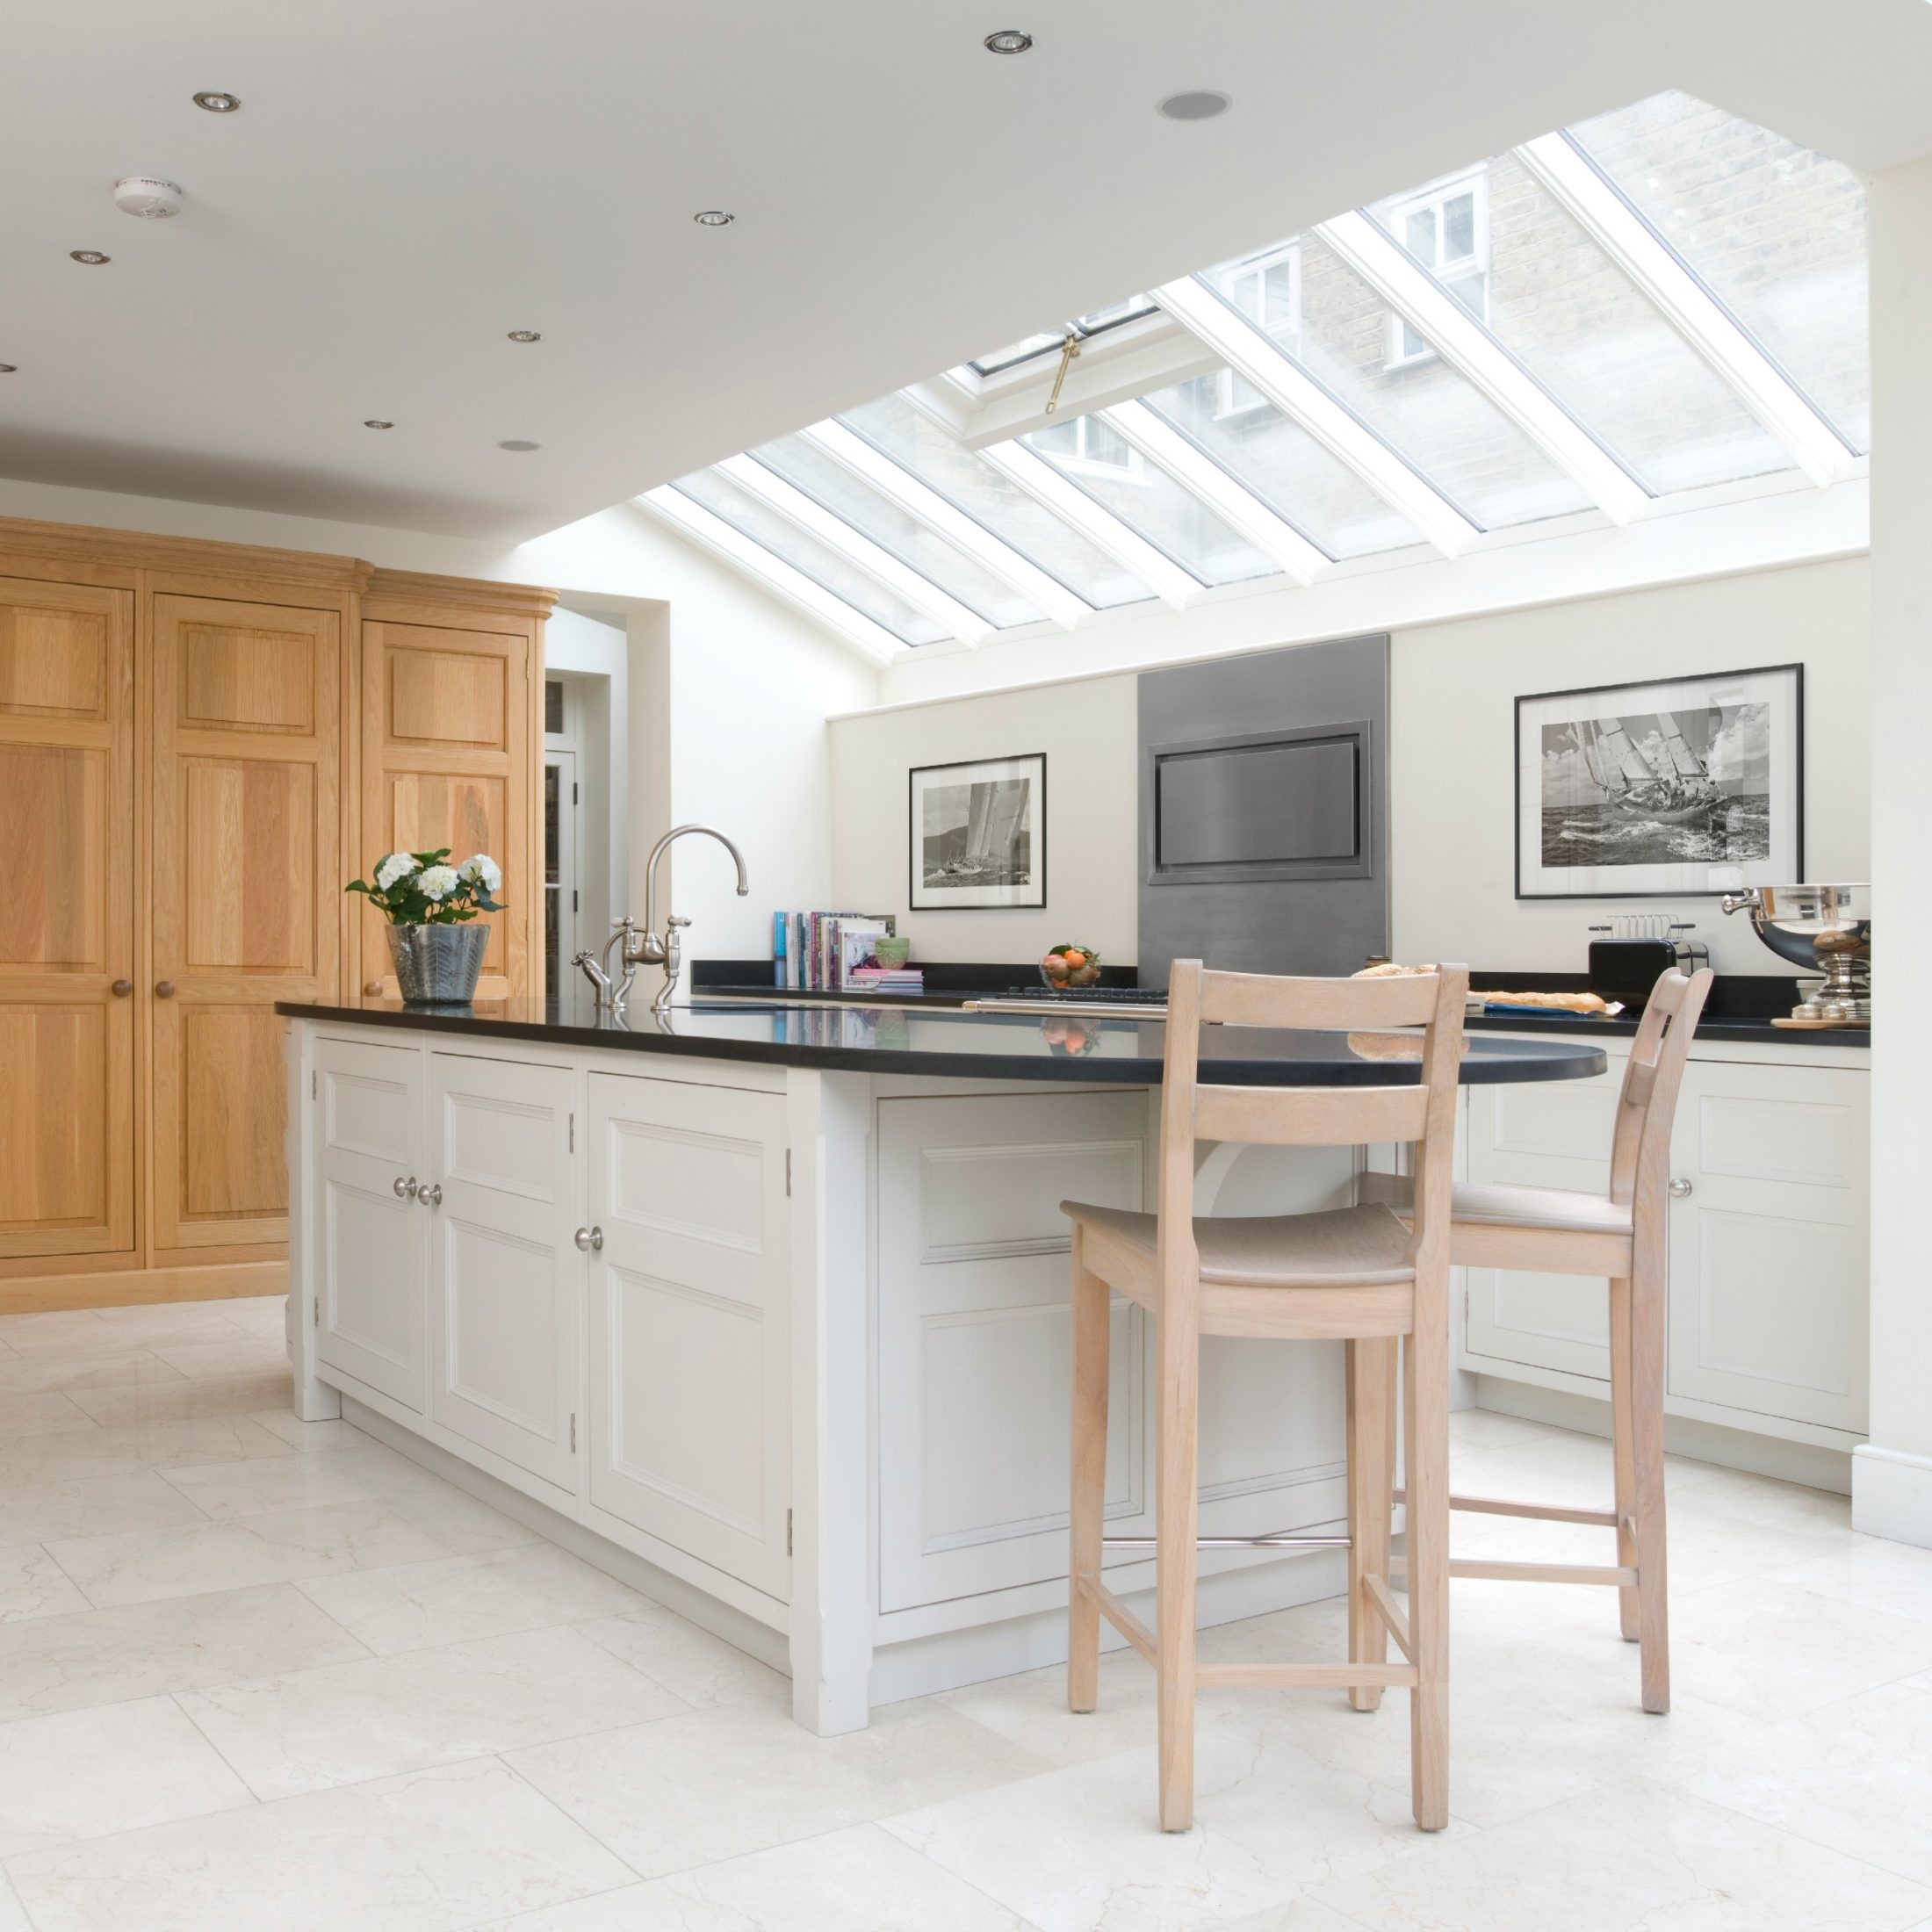 Kitchen confidential a bespoke kitchen in london for London kitchen decor